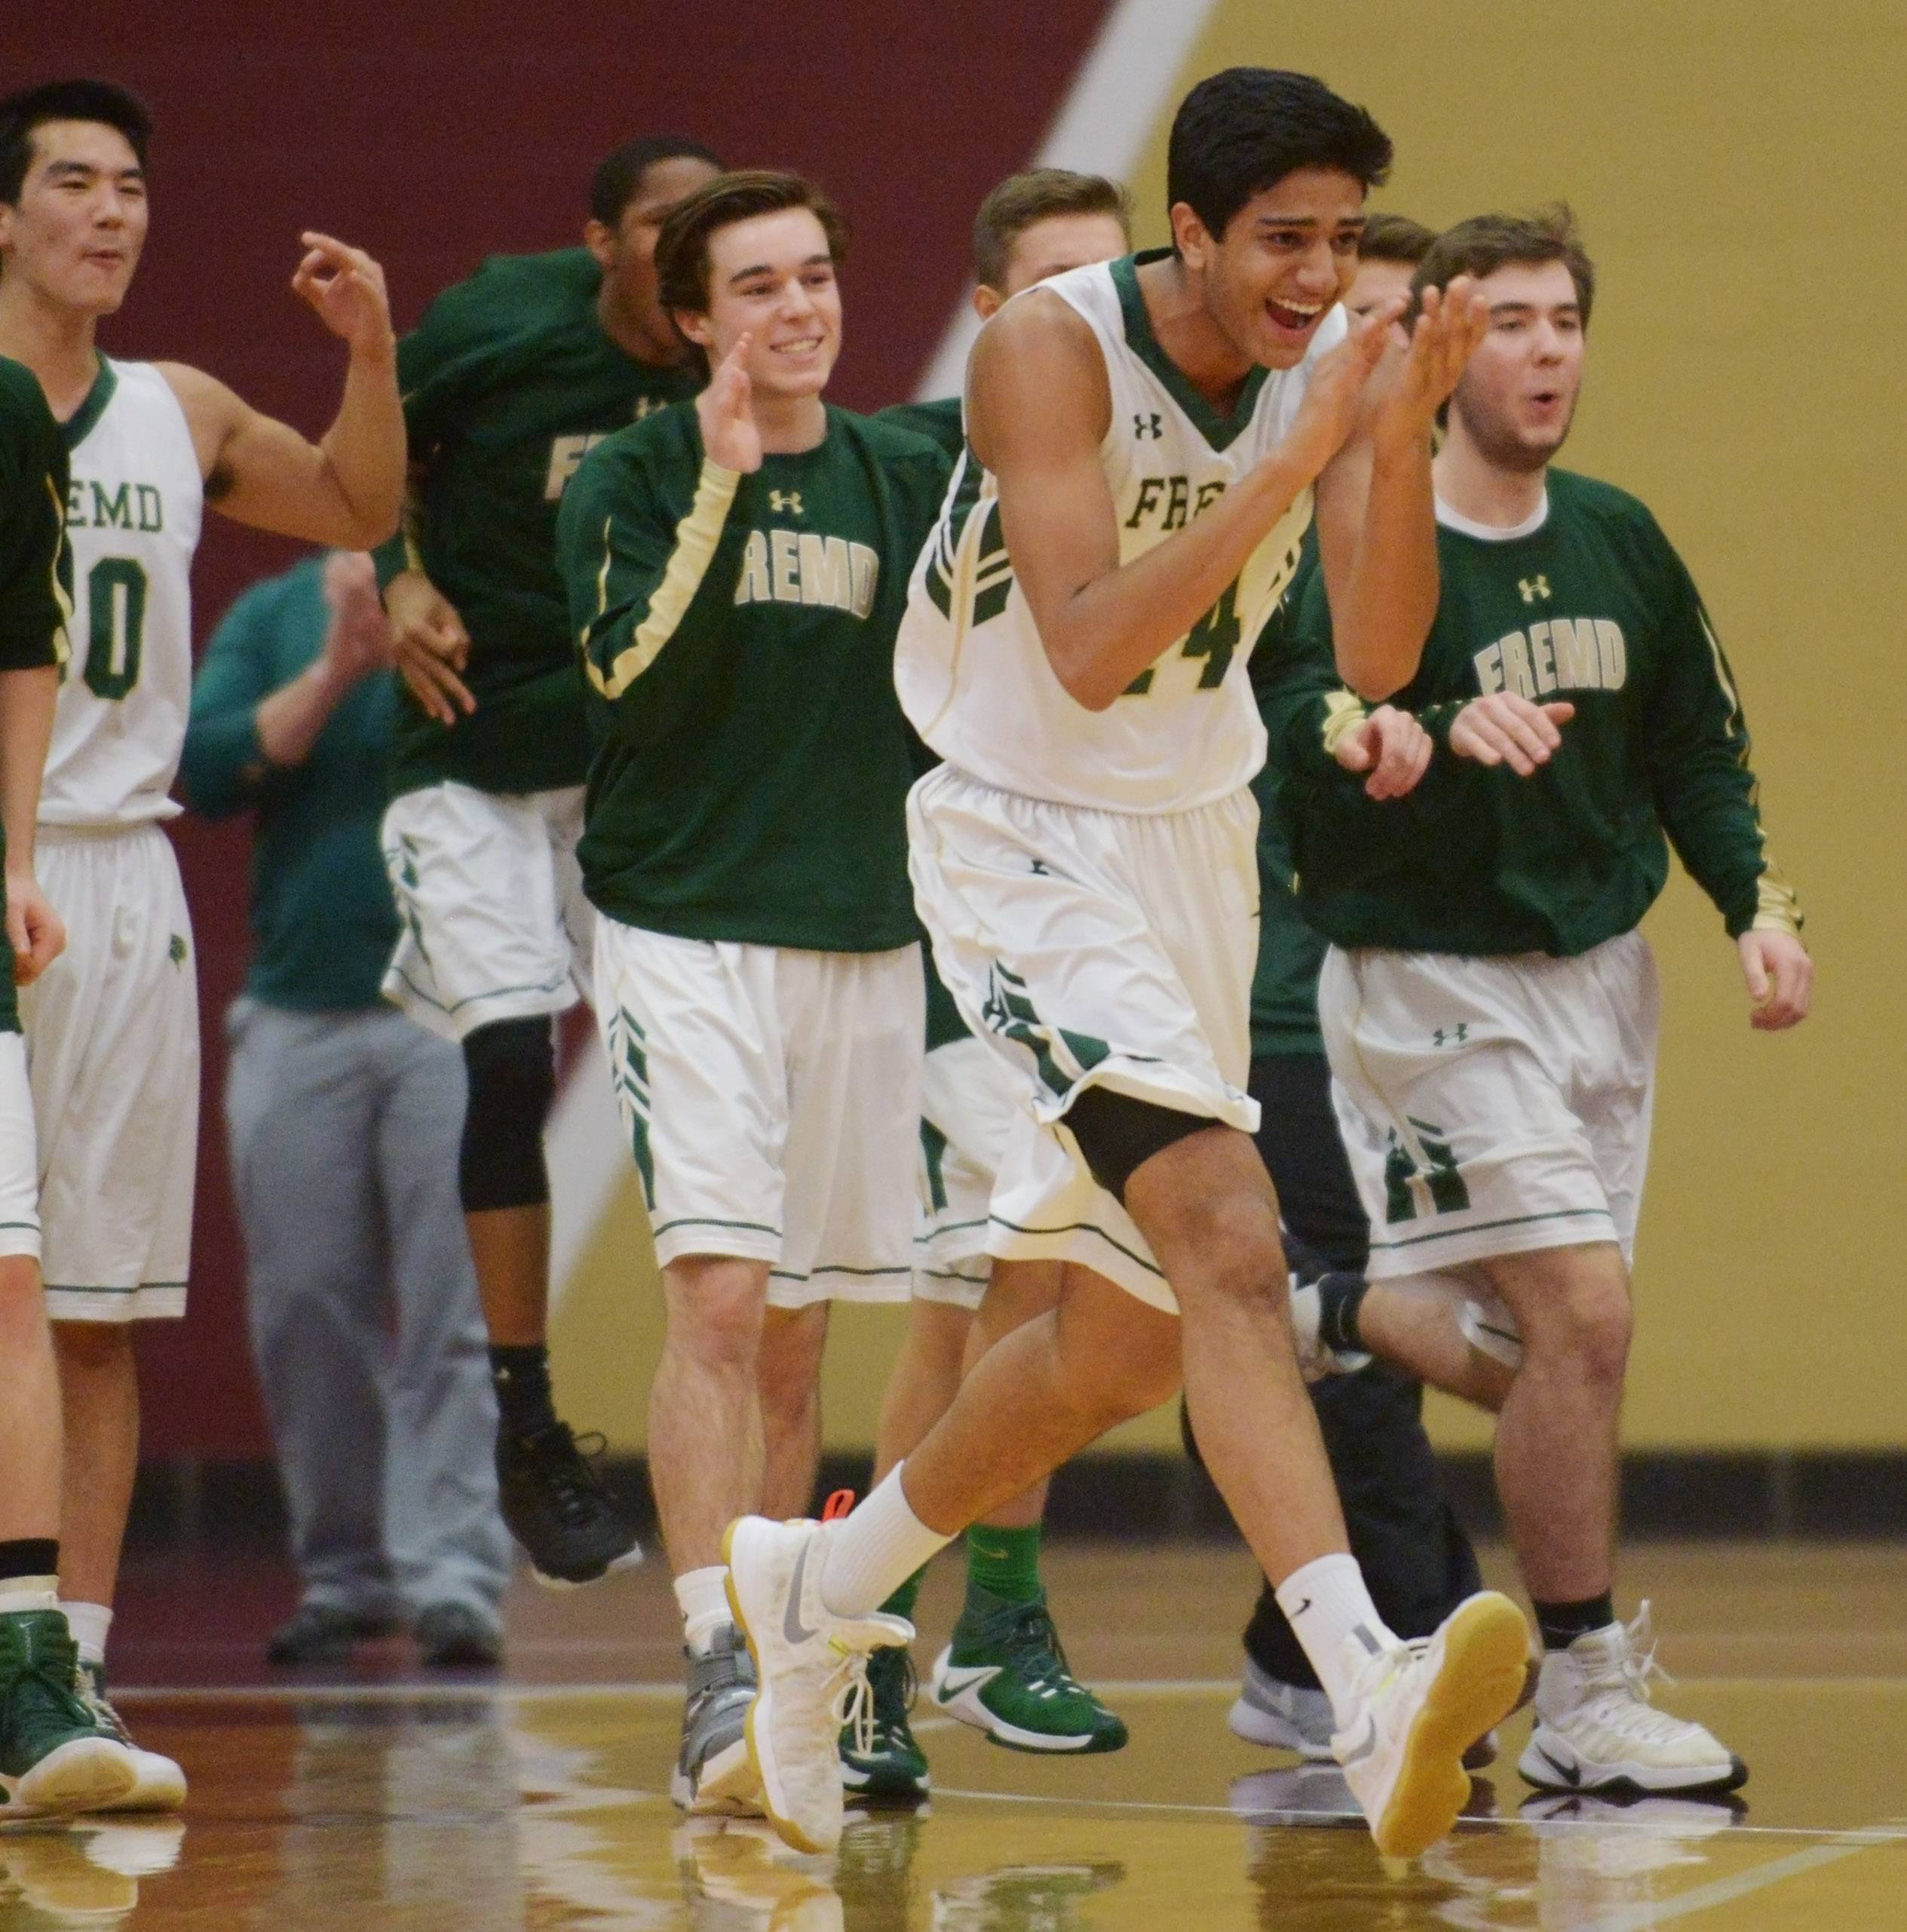 Fremd players including Shaan Patel, front, react as the first quarter ends with a buzzer-beater during the Class 4A sectional semifinal against Grant at the Robert Morris University gymnasium in Arlington Heights on Tuesday.